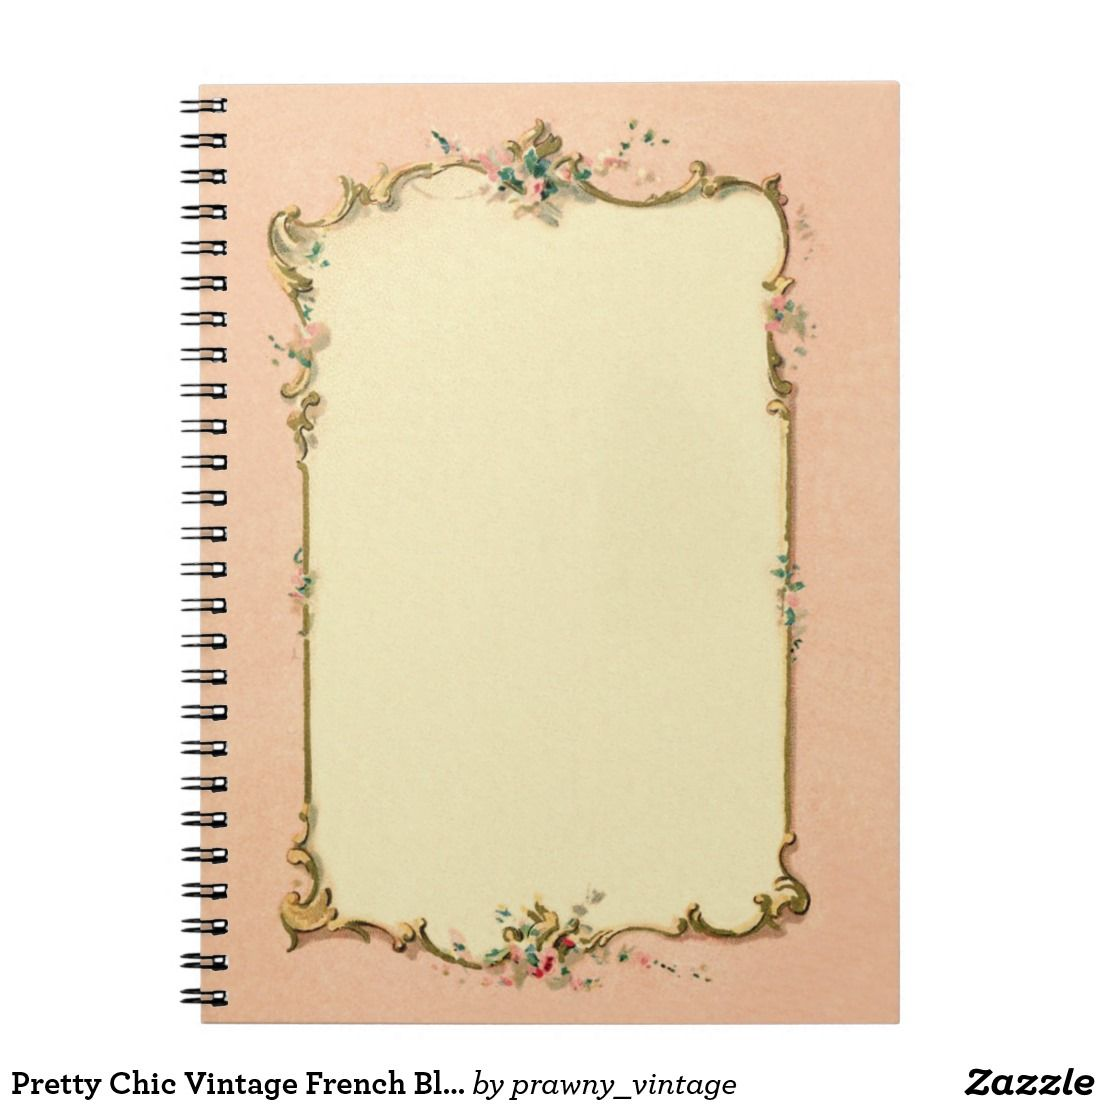 Create Your Own Spiral Photo Notebook Zazzle Com Vintage Chic Scrapbook Frames French Vintage